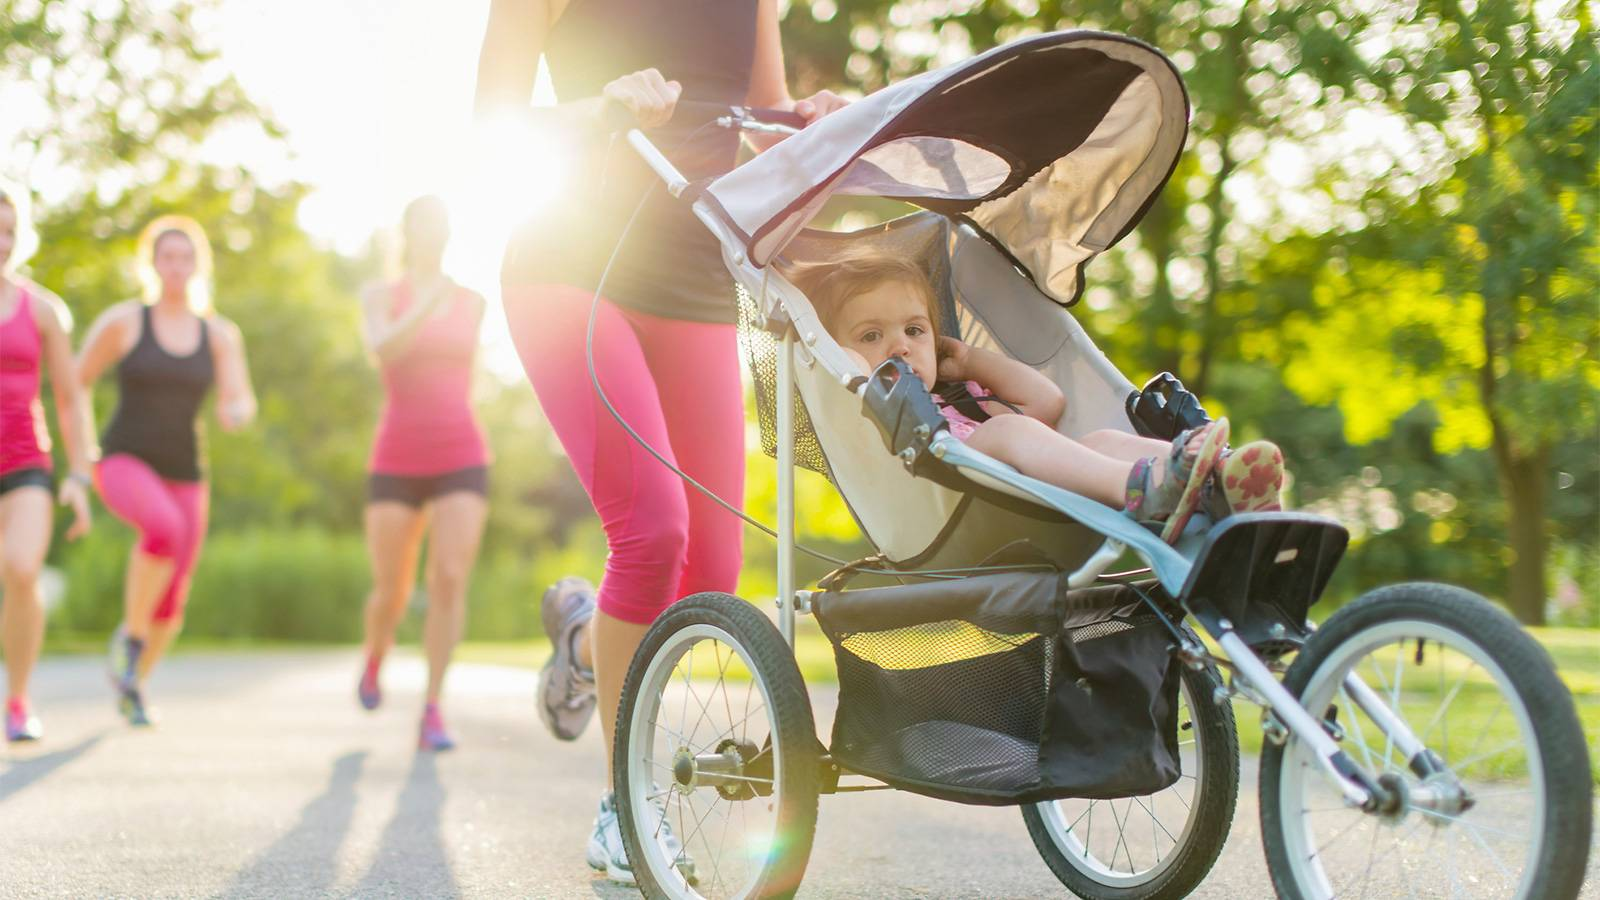 Babies-BUYER'S-GUIDE-Best-jogging-strollers-for-active-parents-main -(1)